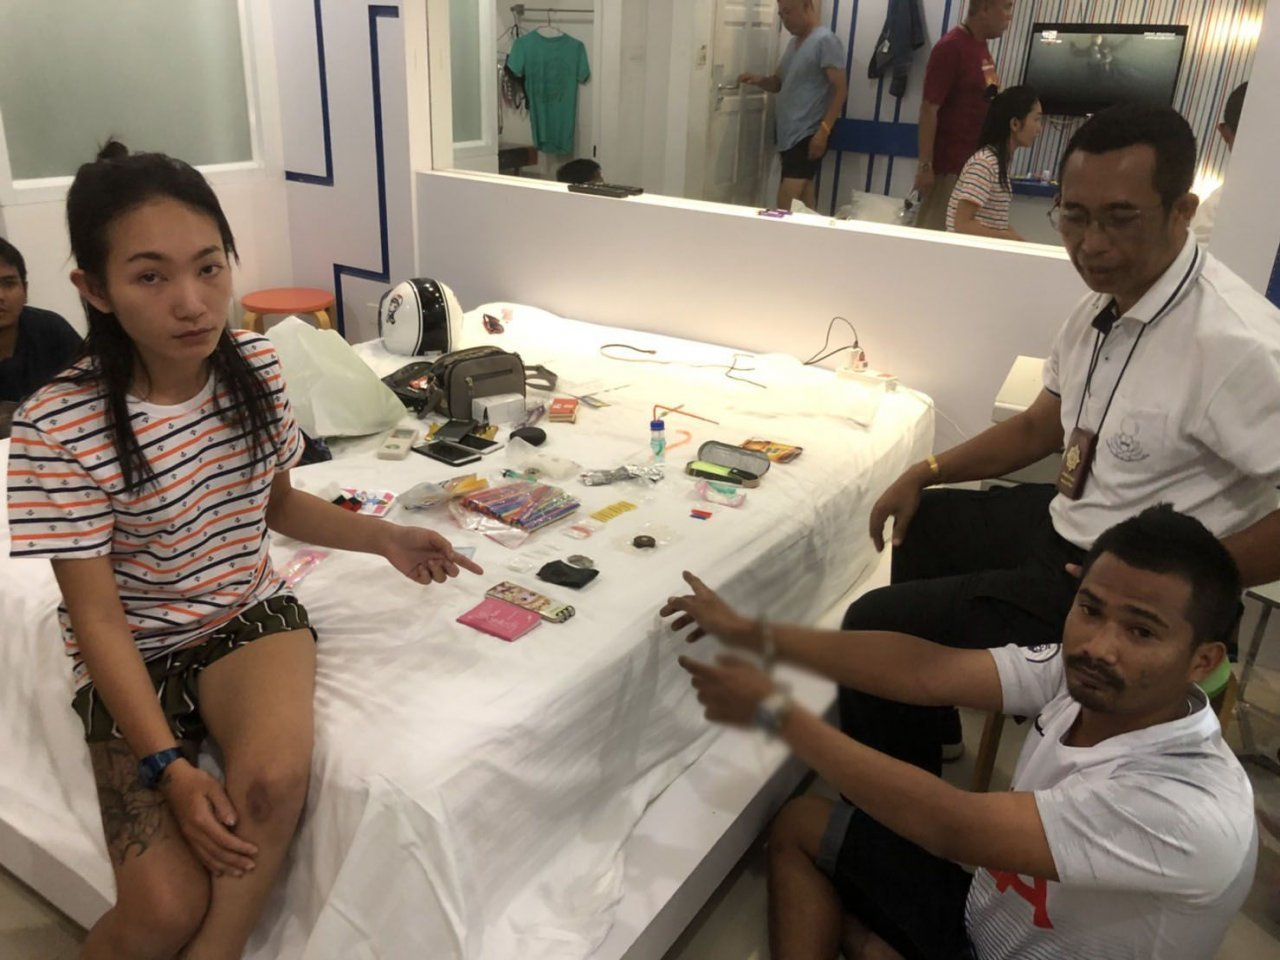 Couple arrested in Hat Yai resort for allegedly selling drugs. A couple was arrested at a resort in Hat Yai district of Songkhla Monday morning